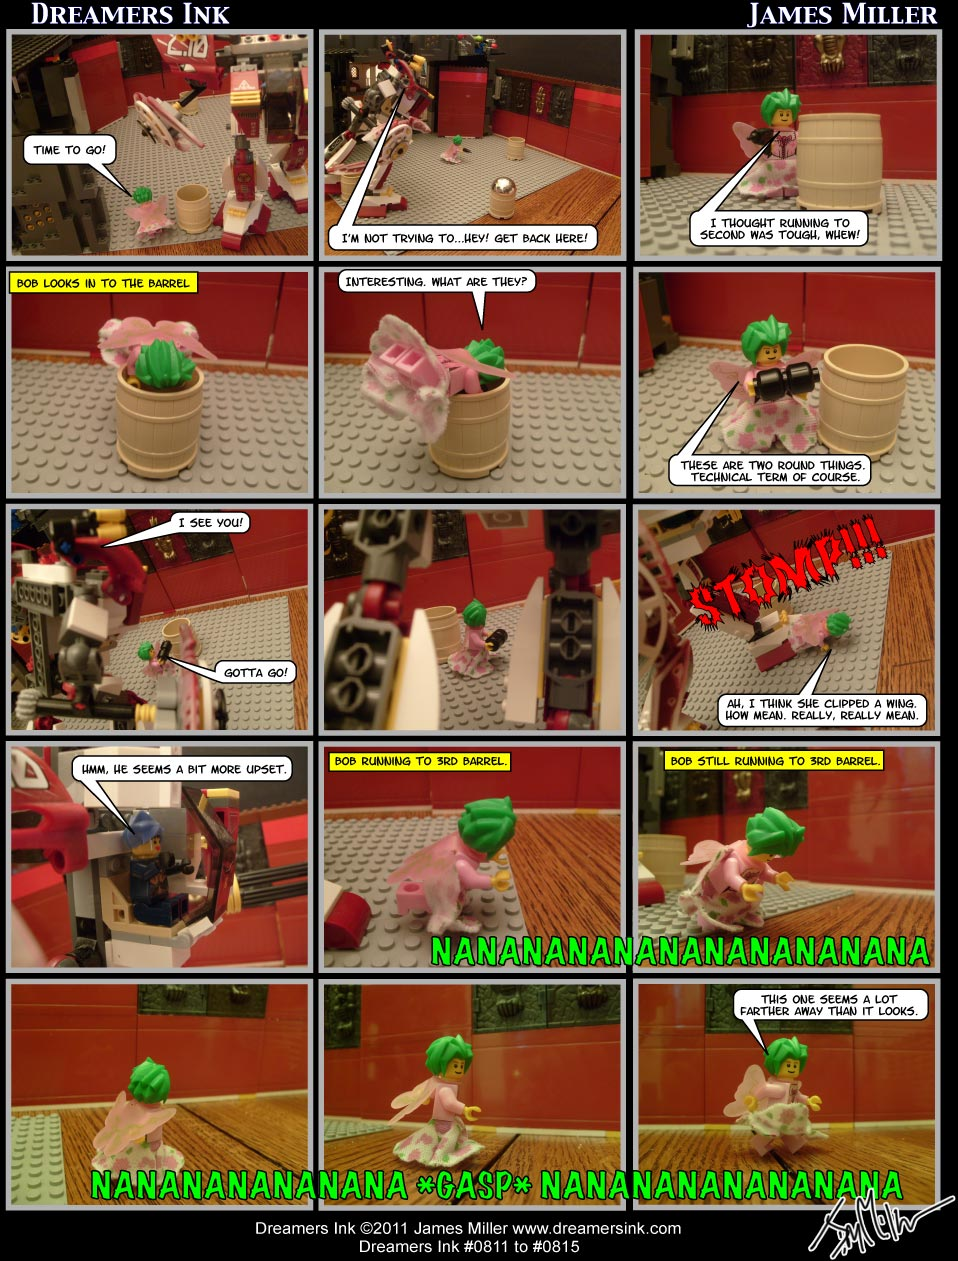 Strips #0811 To #0815